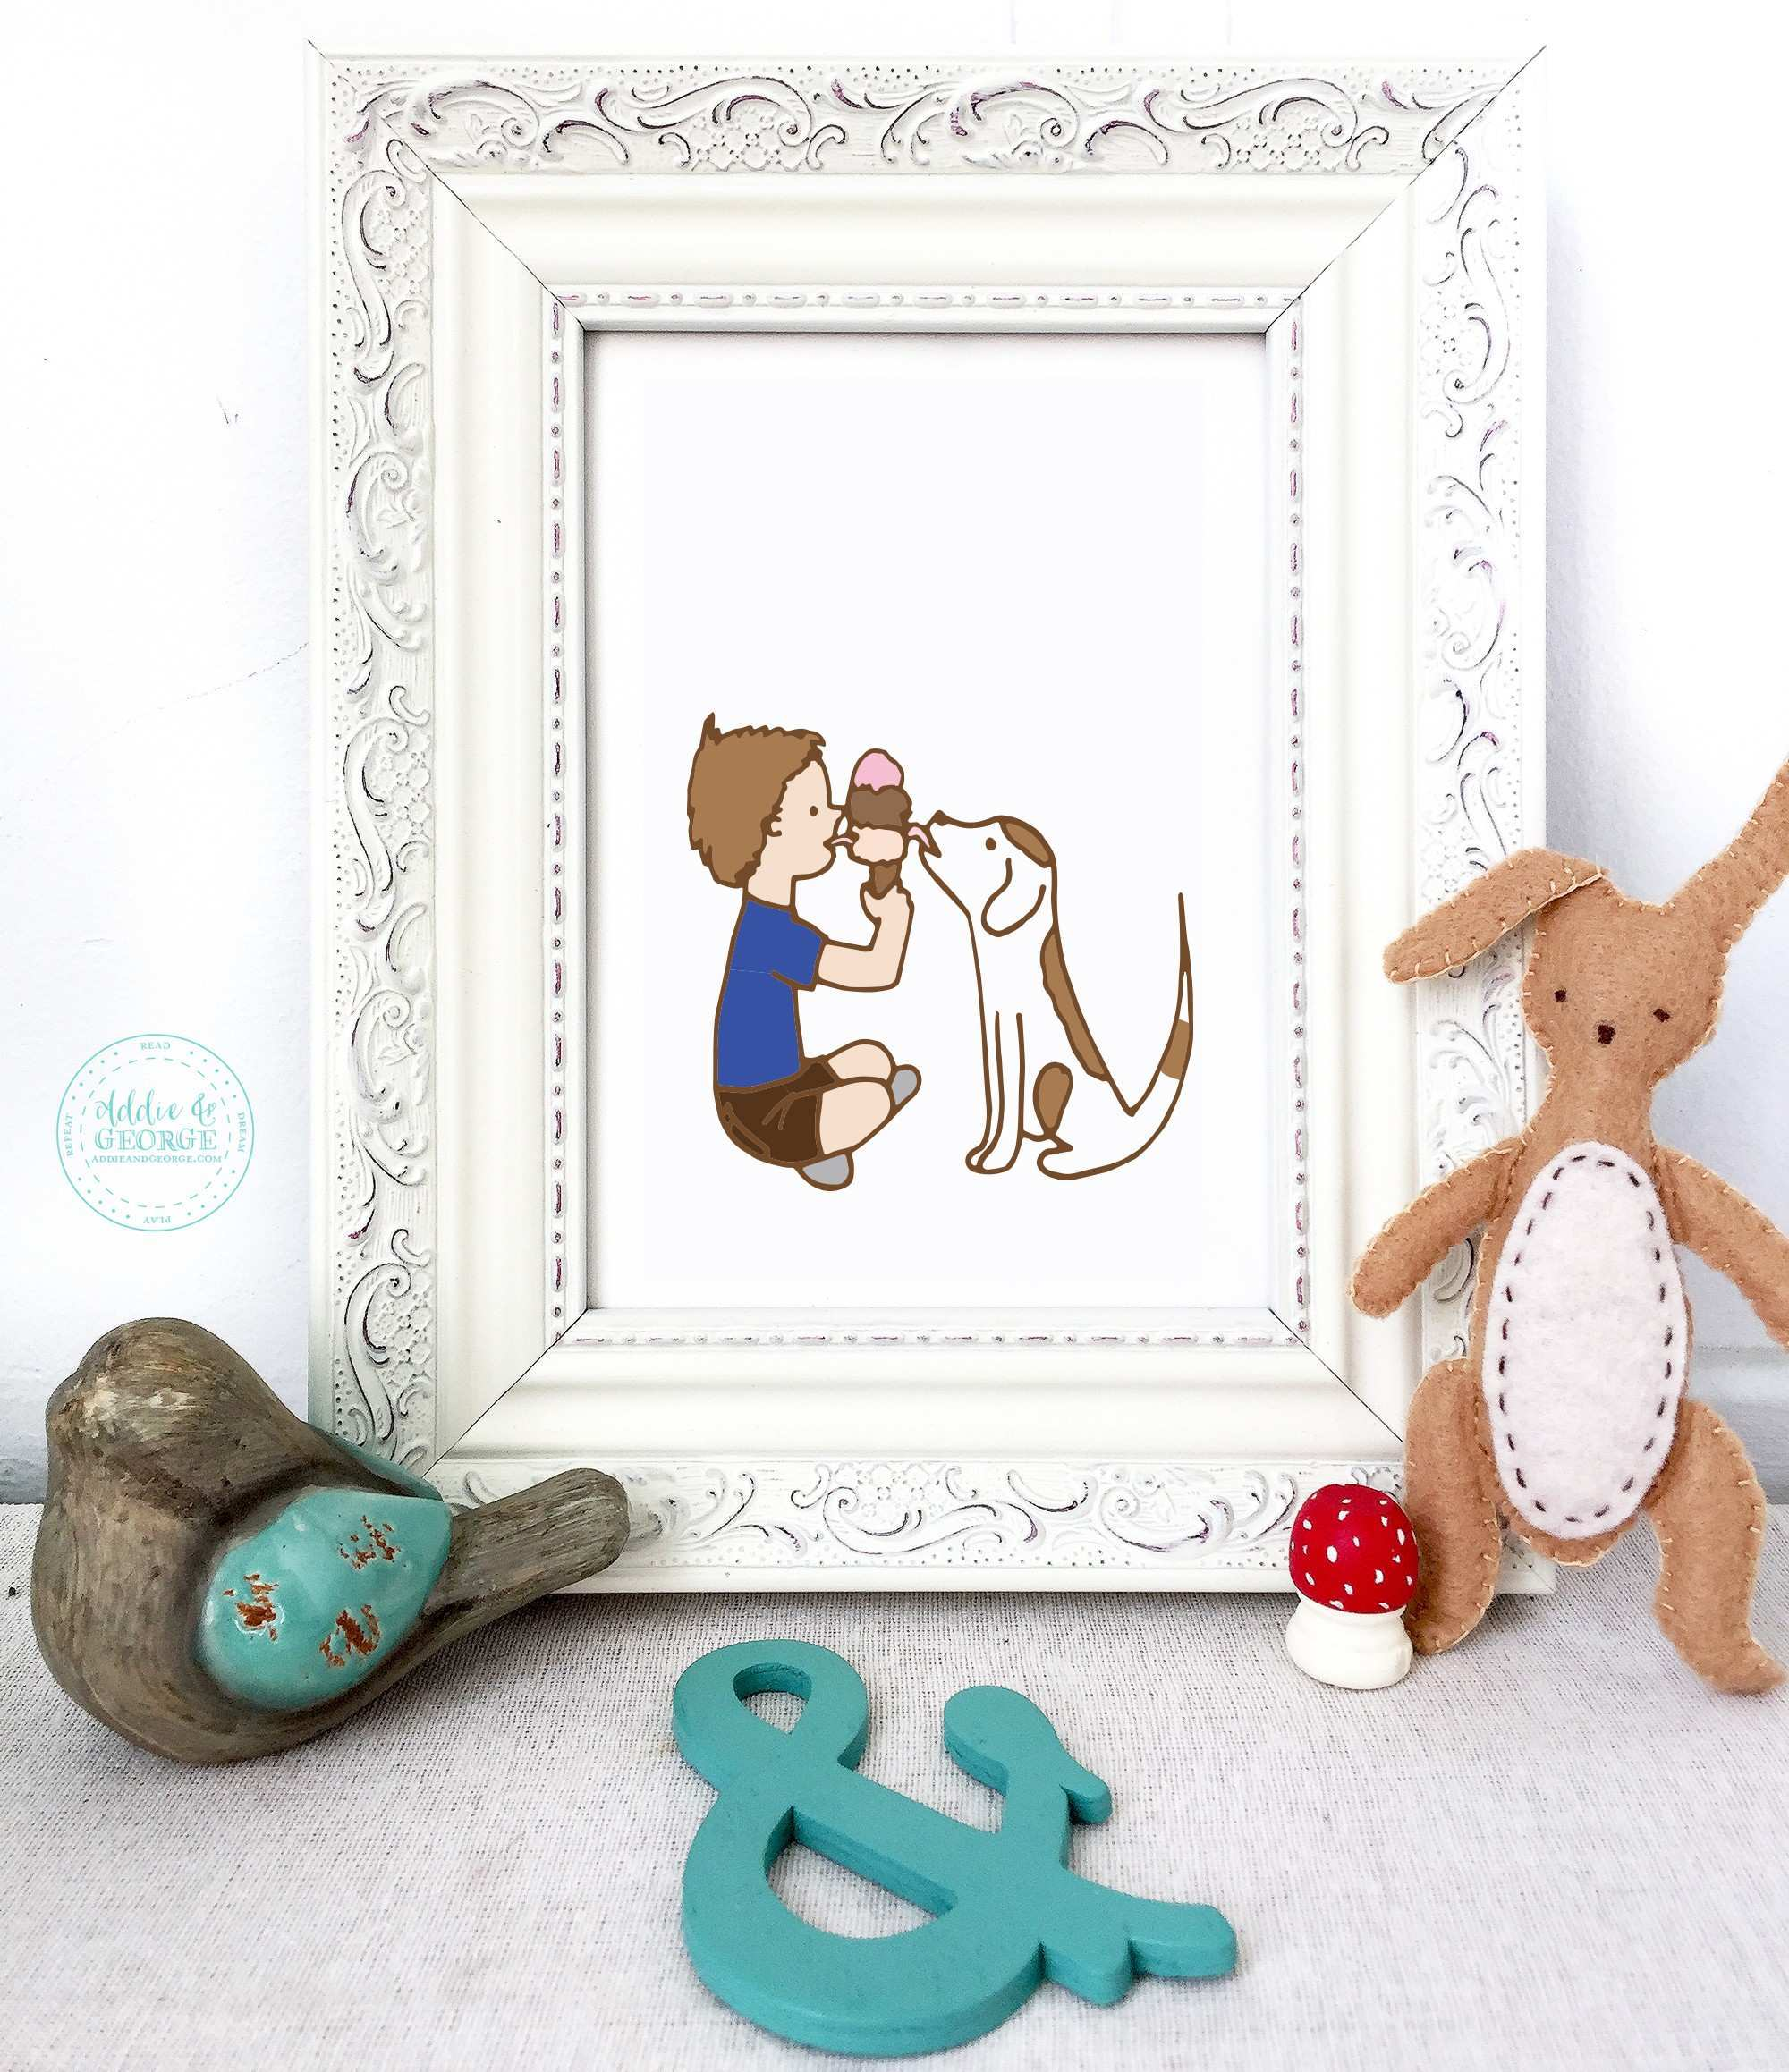 Childrens Wall Art to Inspire the Imagination Prints for the